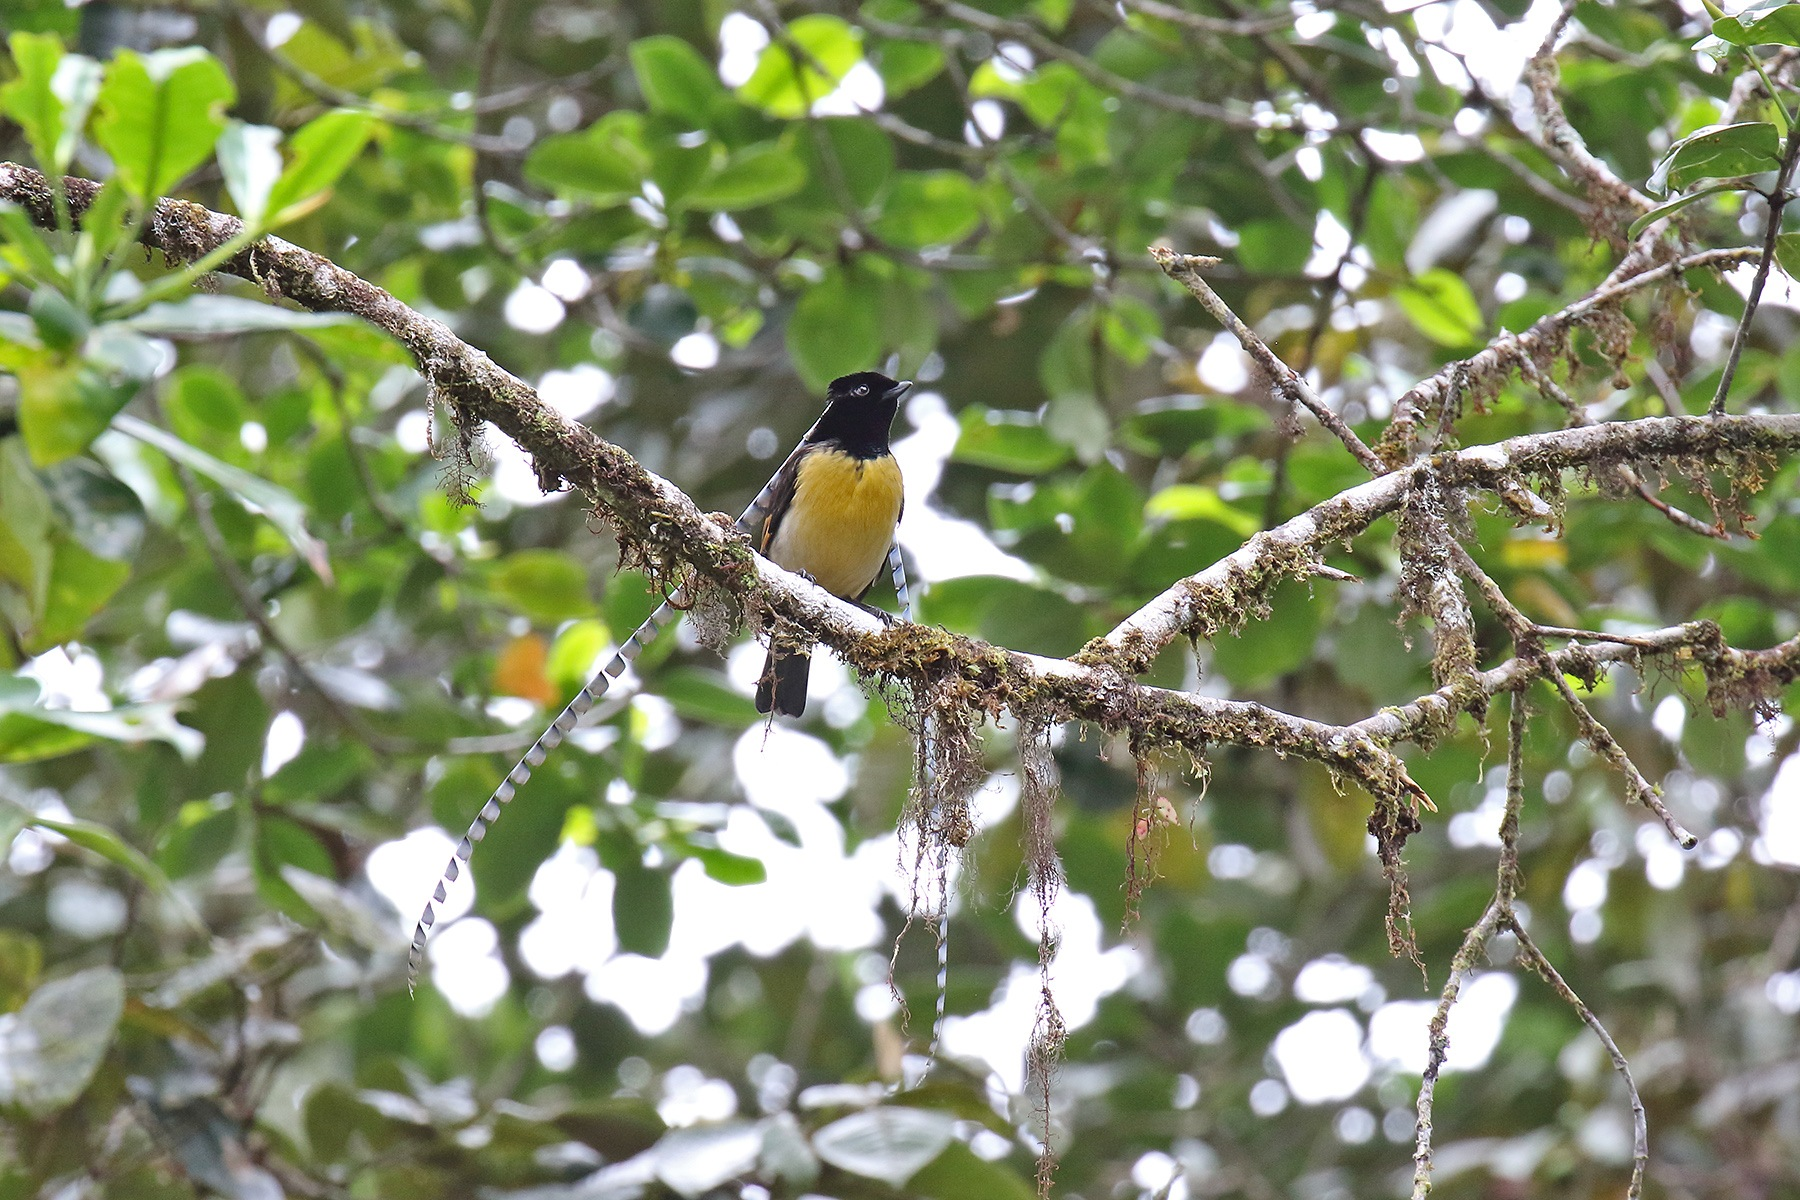 Papua New Guinea Birding Tours - Birdwatching Tours - Birdquest